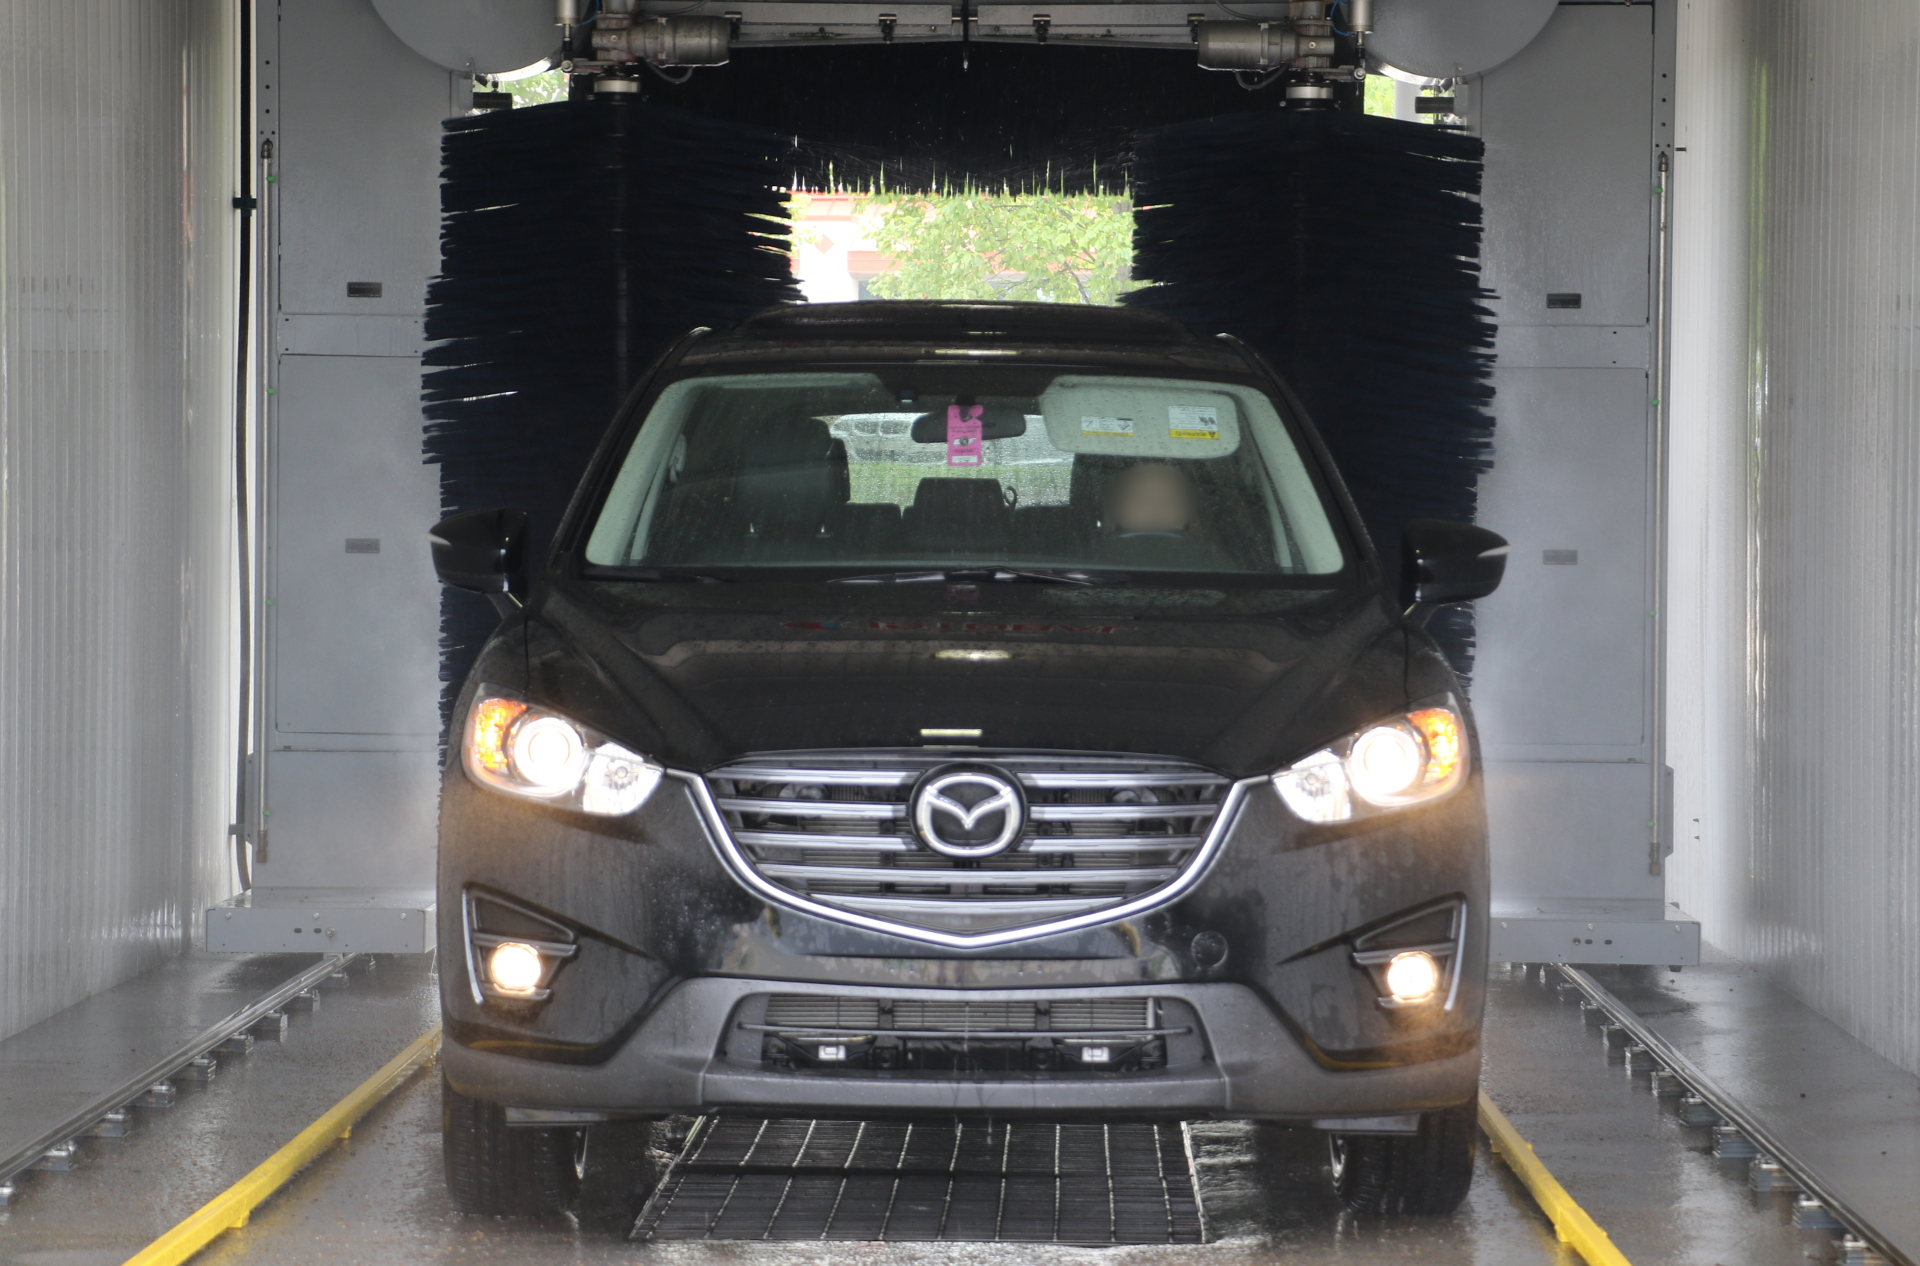 Image of the iWash car wash friction bay. iWash is a car wash in the Brentwood and Nashville area.